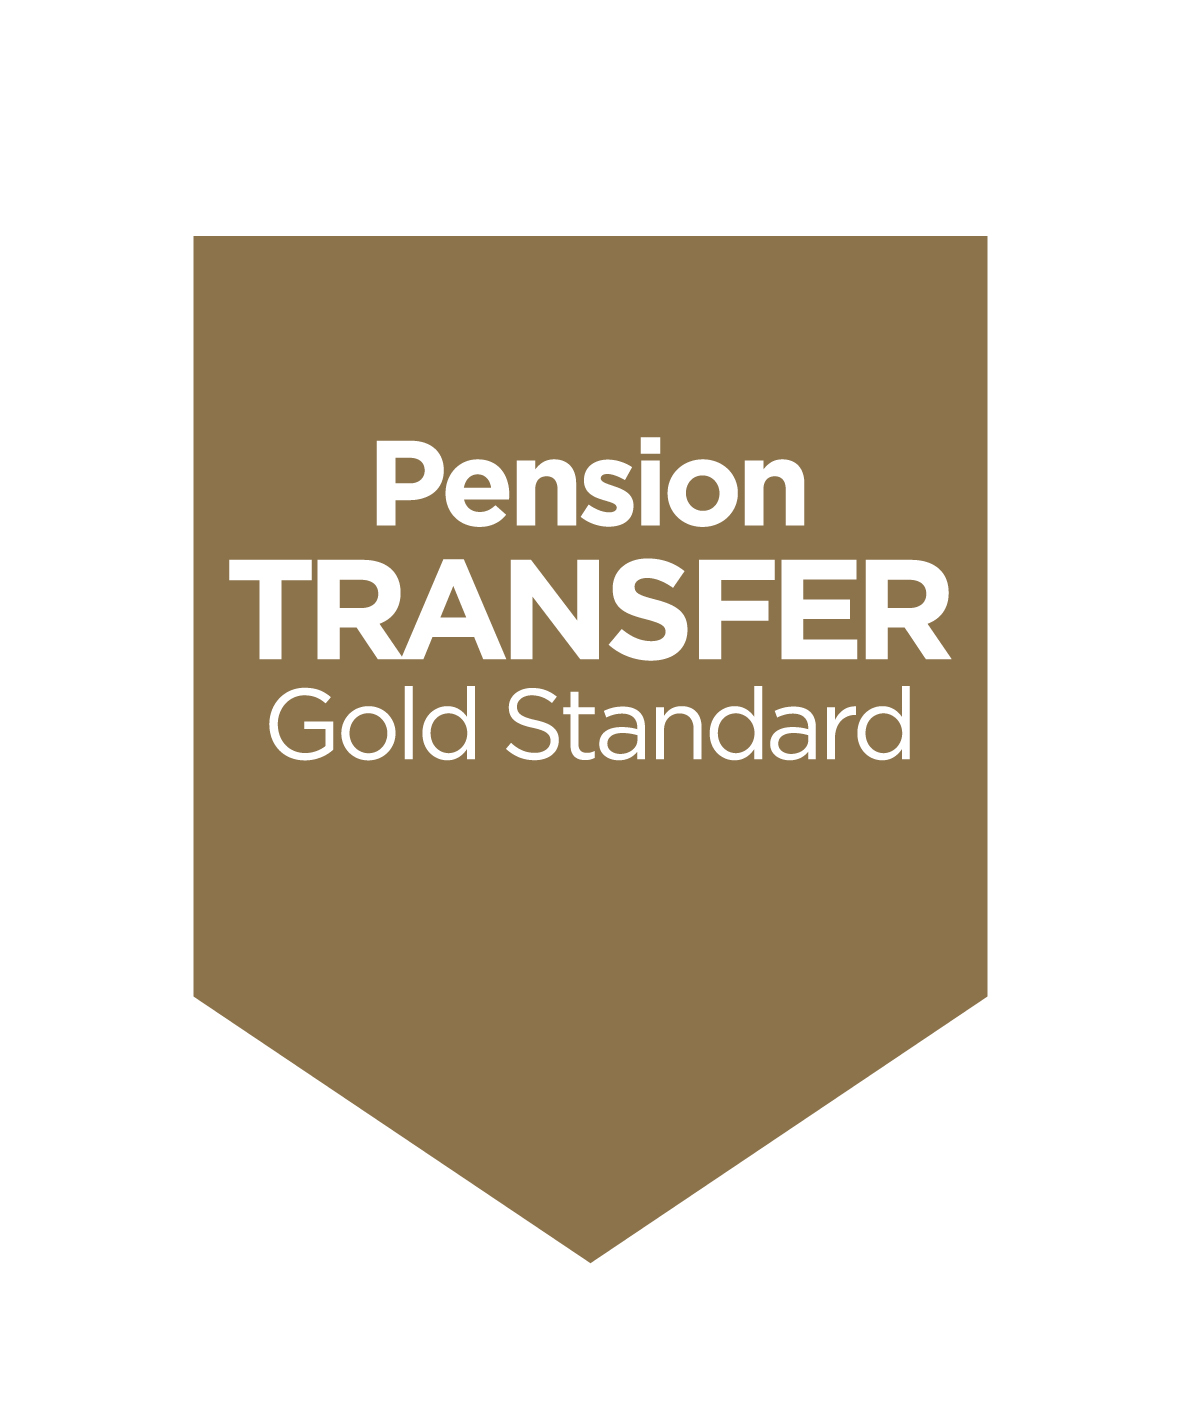 Longhurst Pension Transfer Gold Standard